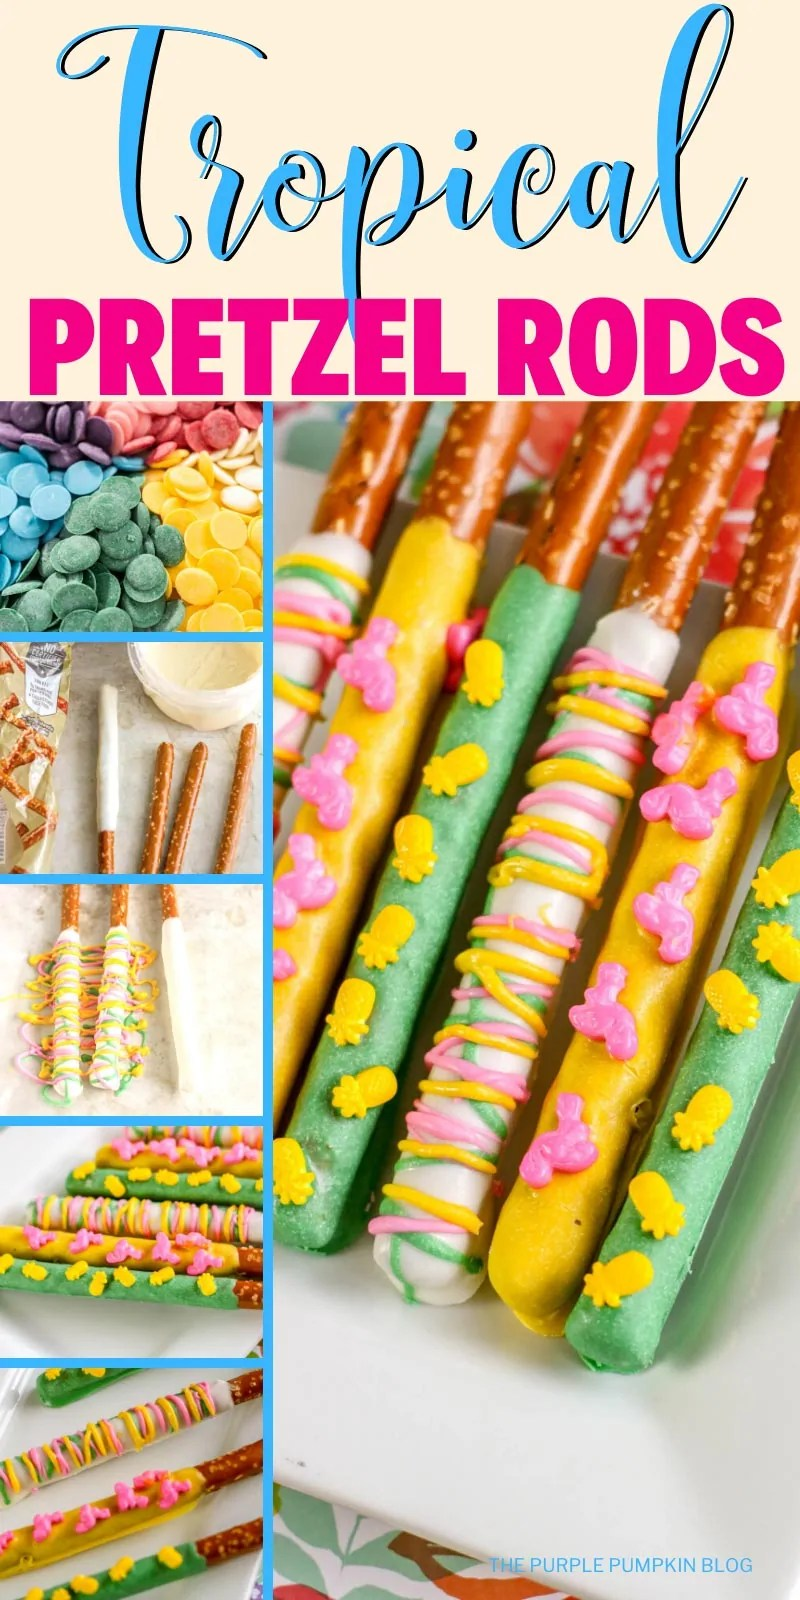 Tropical Pretzel Rods - step by step images making these treats - candy melt wafers, pretzels dipped in melted candy, Pretzels decorated with drizzled candy and tropical sprinkles.